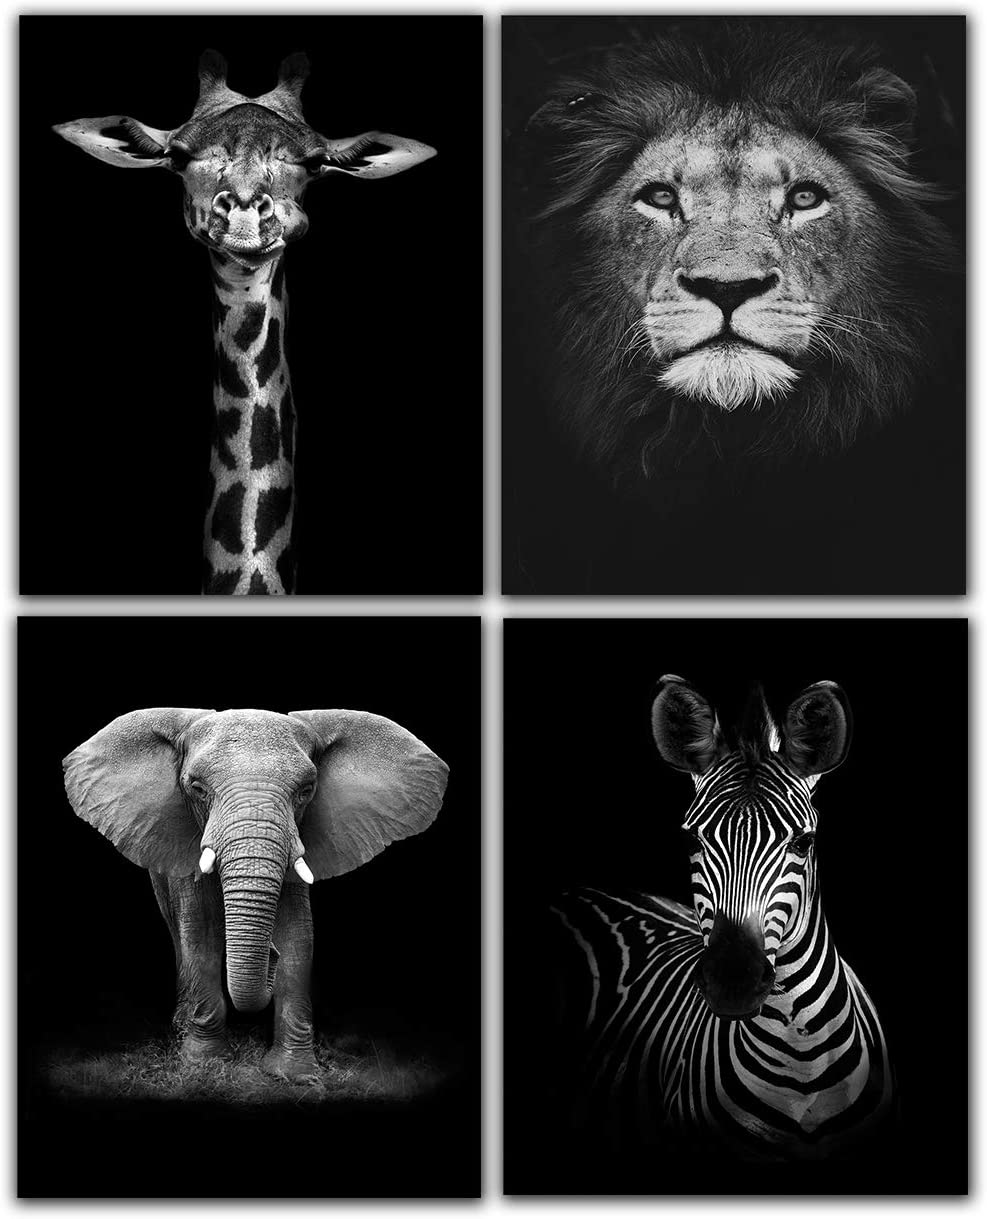 """Modern Black and White Décor Canvas Wall Art,Animals Picture Prints,Lion,Elephant,Zebra,Giraffe Painting Printed on Canvas,Wall Decoration 8""""x10"""" Unframed Set of 4 Prints"""